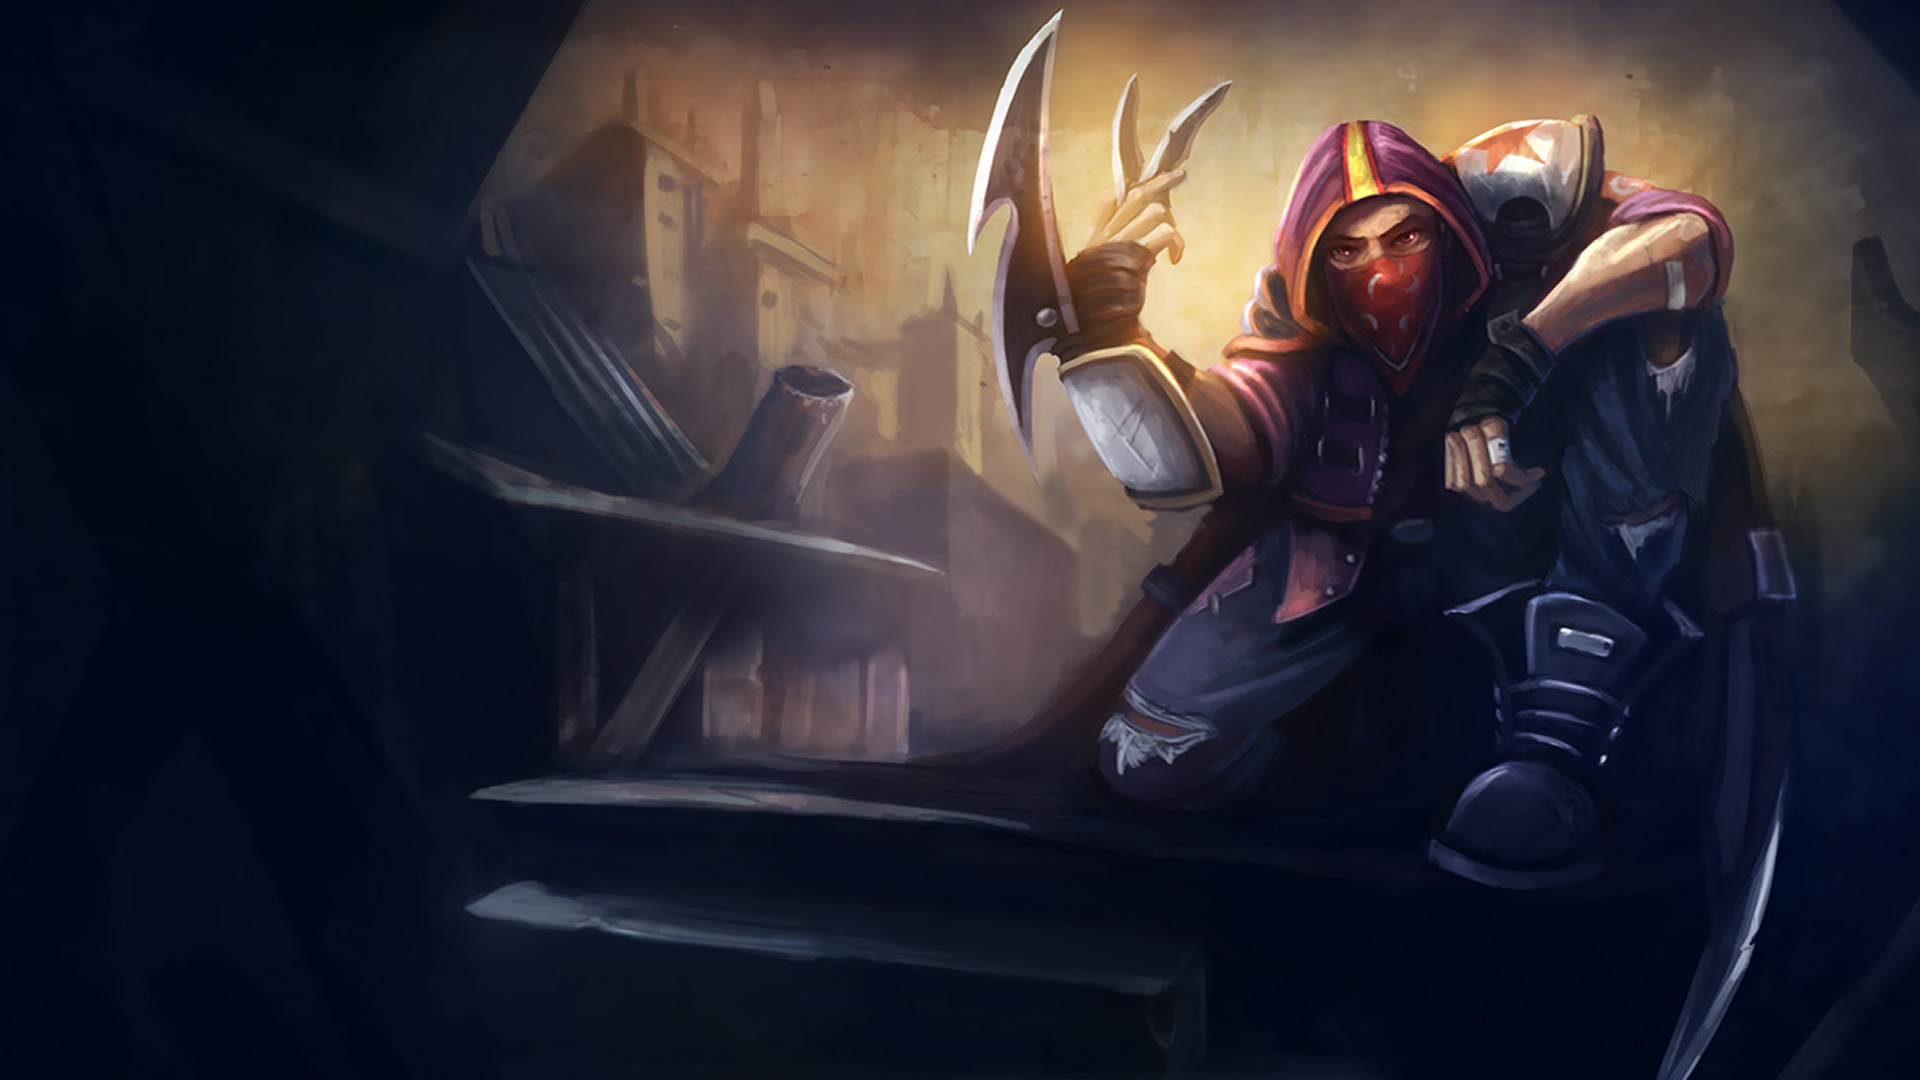 Renegade Talon - League of Legends Wallpapers